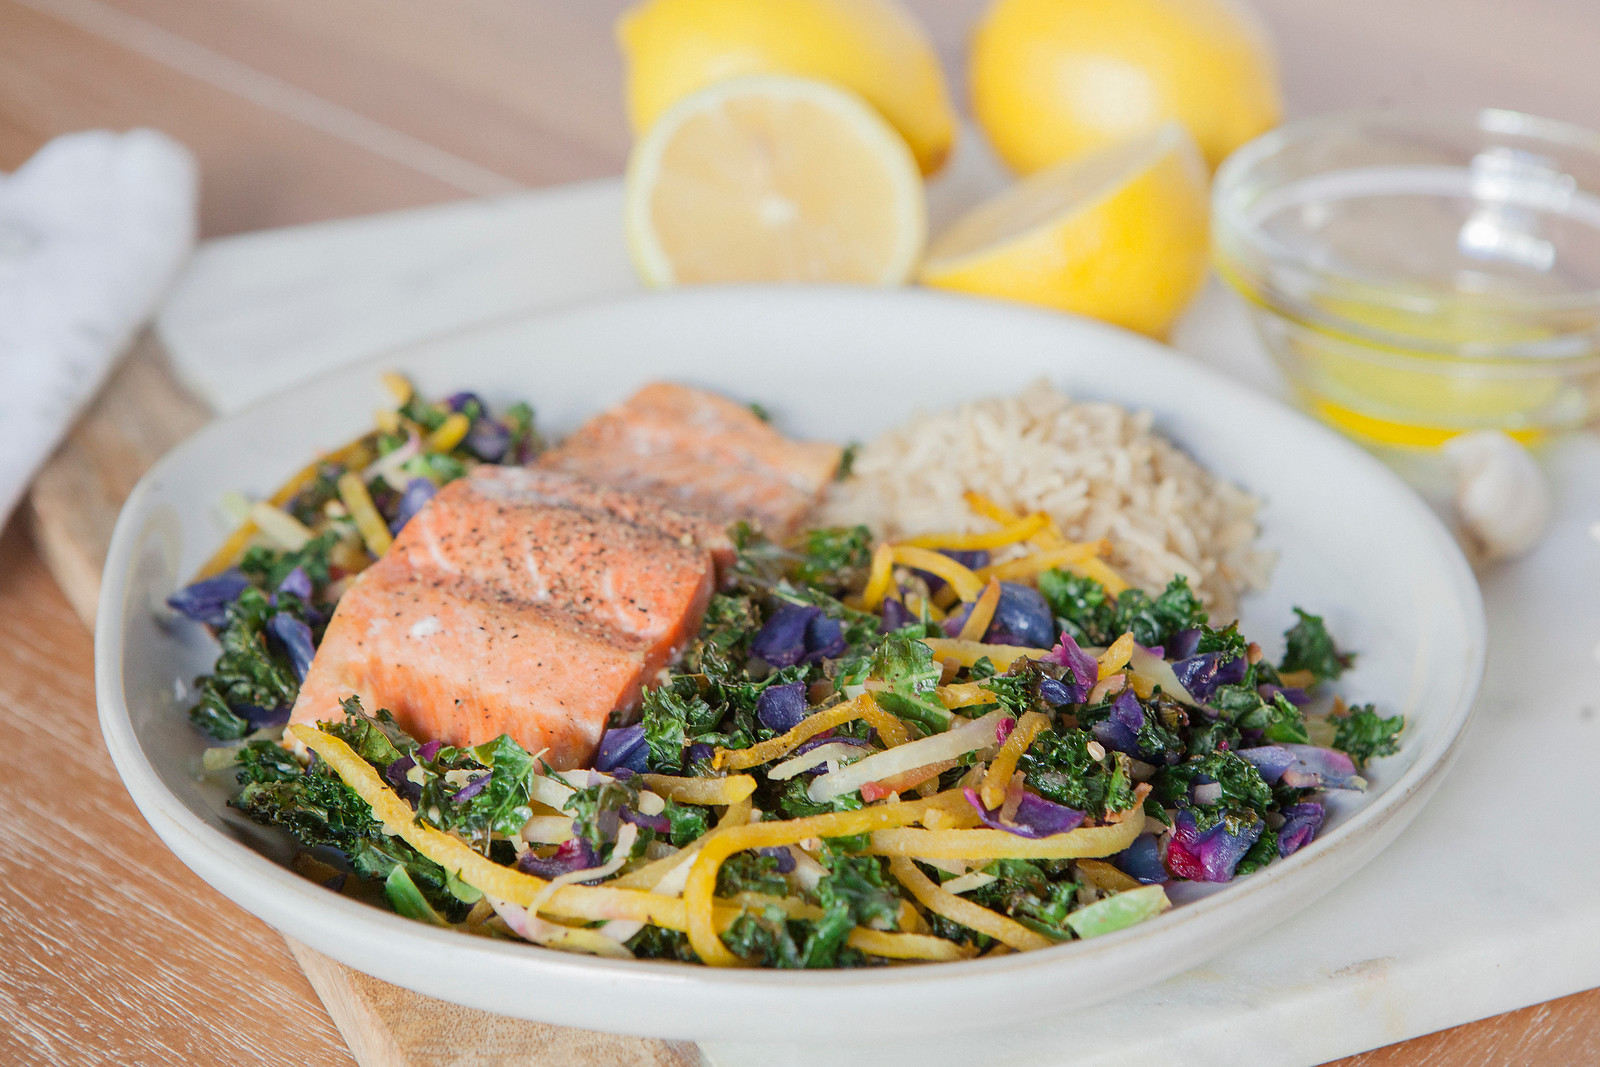 0006_NutritionTwins-kale-beet-salmon